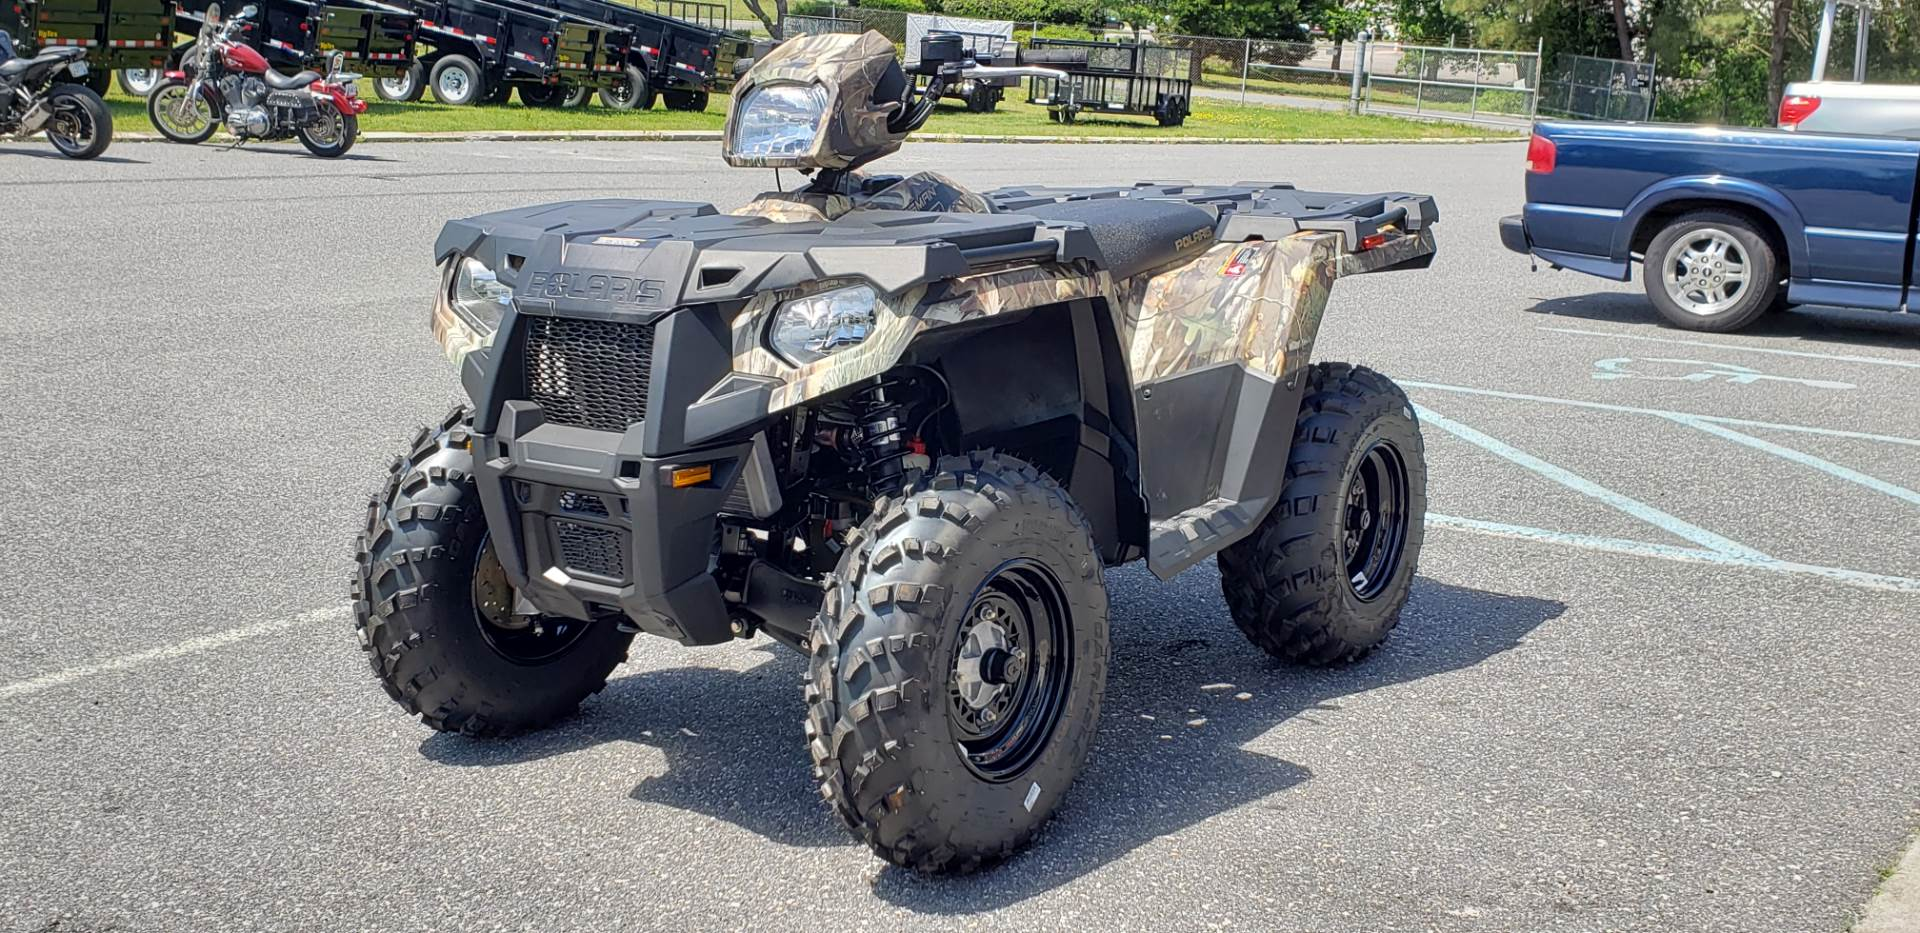 2020 Polaris Sportsman 570 in Hayes, Virginia - Photo 4